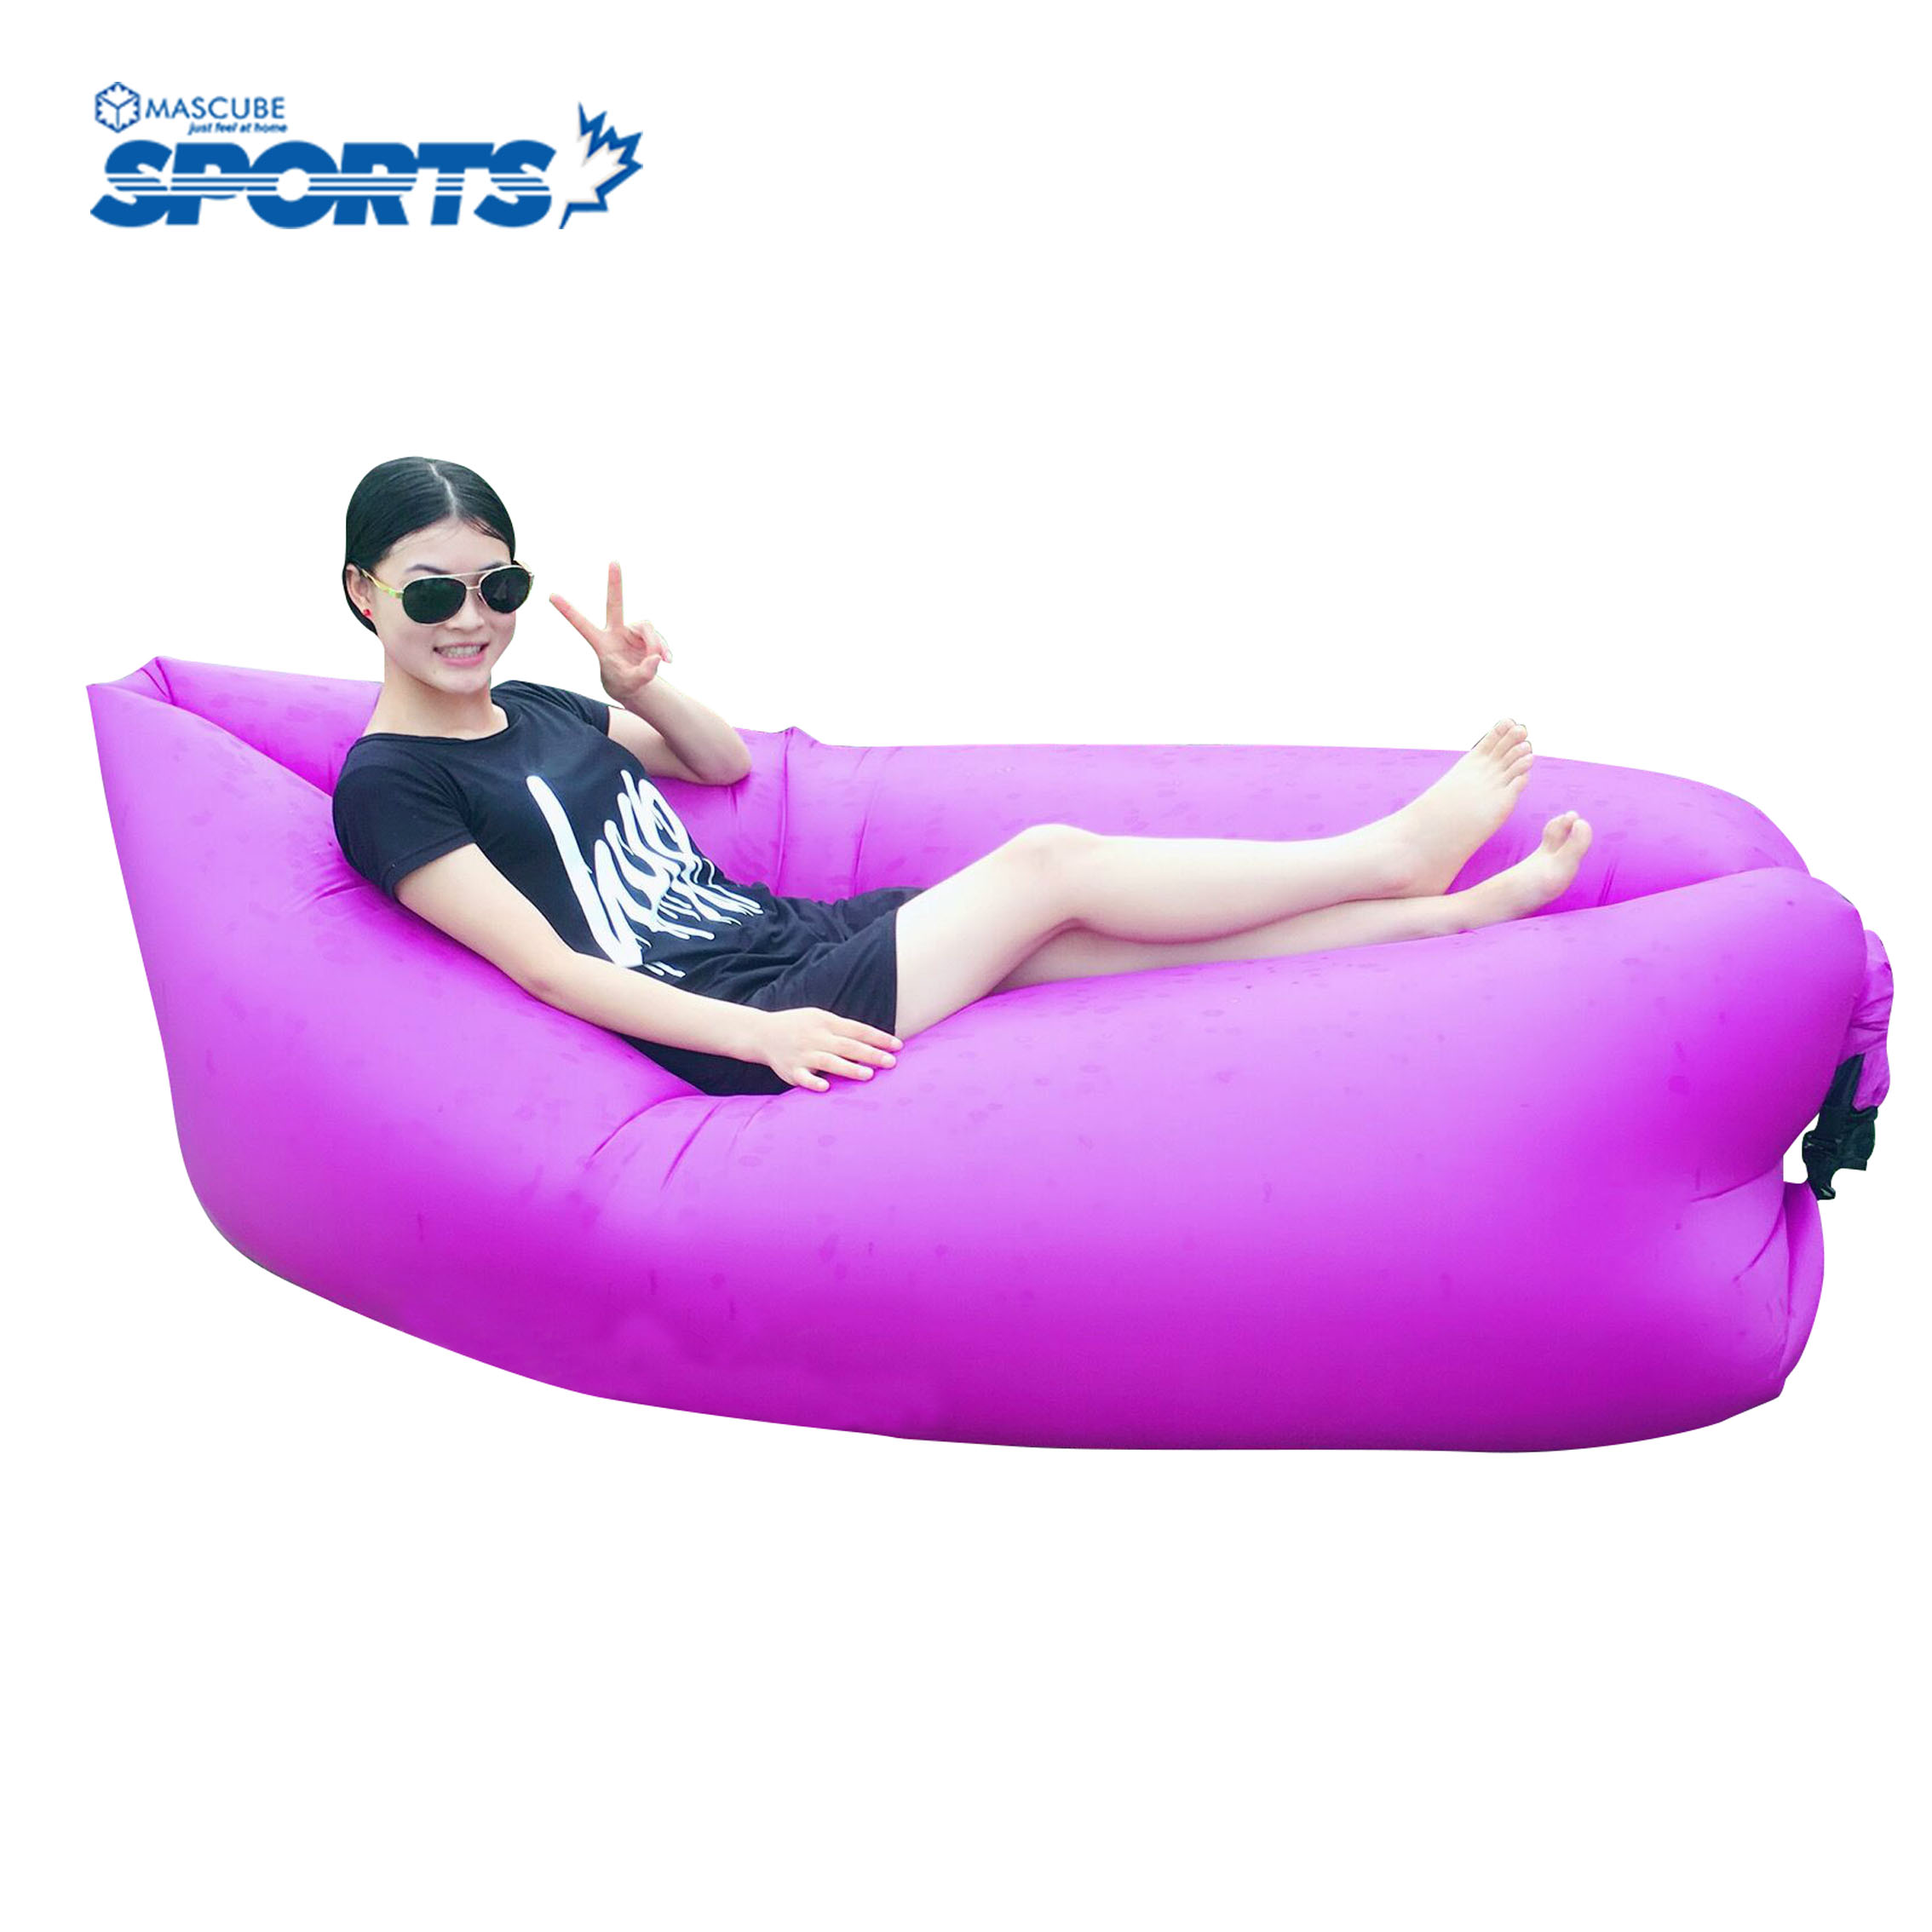 Portable folding bed in a bag - Outdoor Portable Beach Lazy Fold Fast Inflatable Sofa Bed Air Sofa Sleeping Camping Lounge Bag Mat